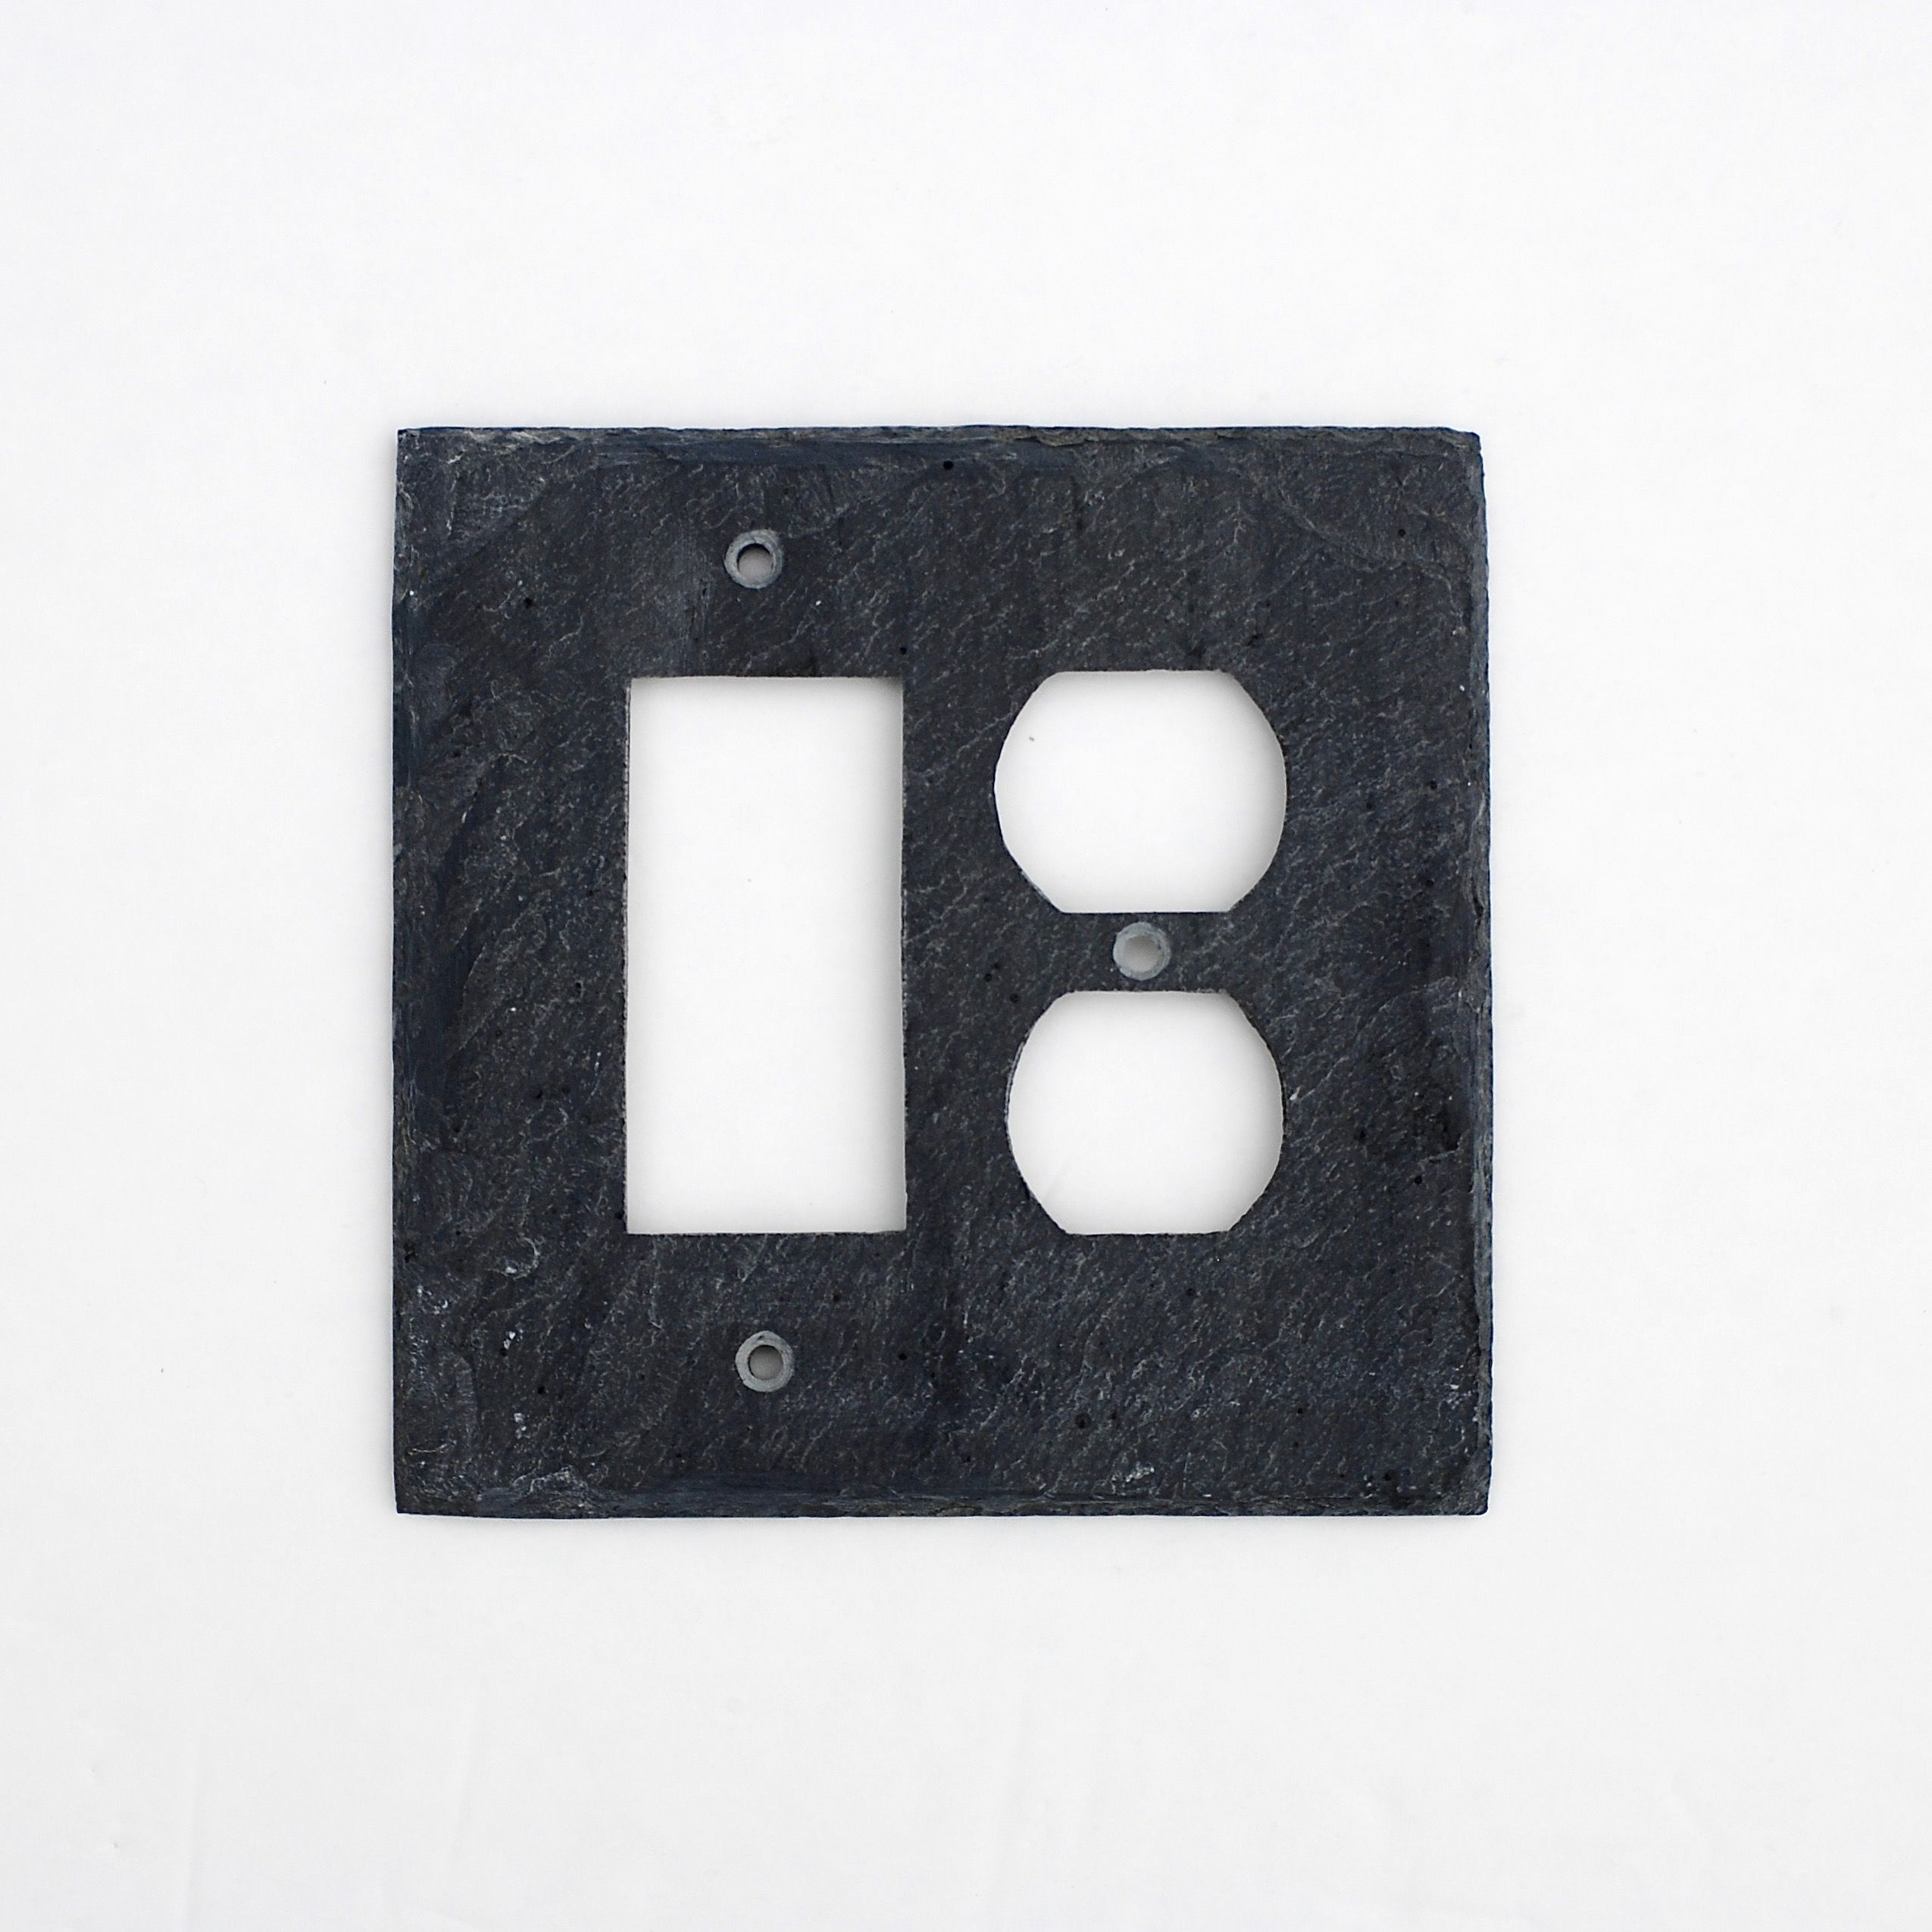 Ornate Switch Plates Decorative Light Switch Cover Stone Light Switch Cover